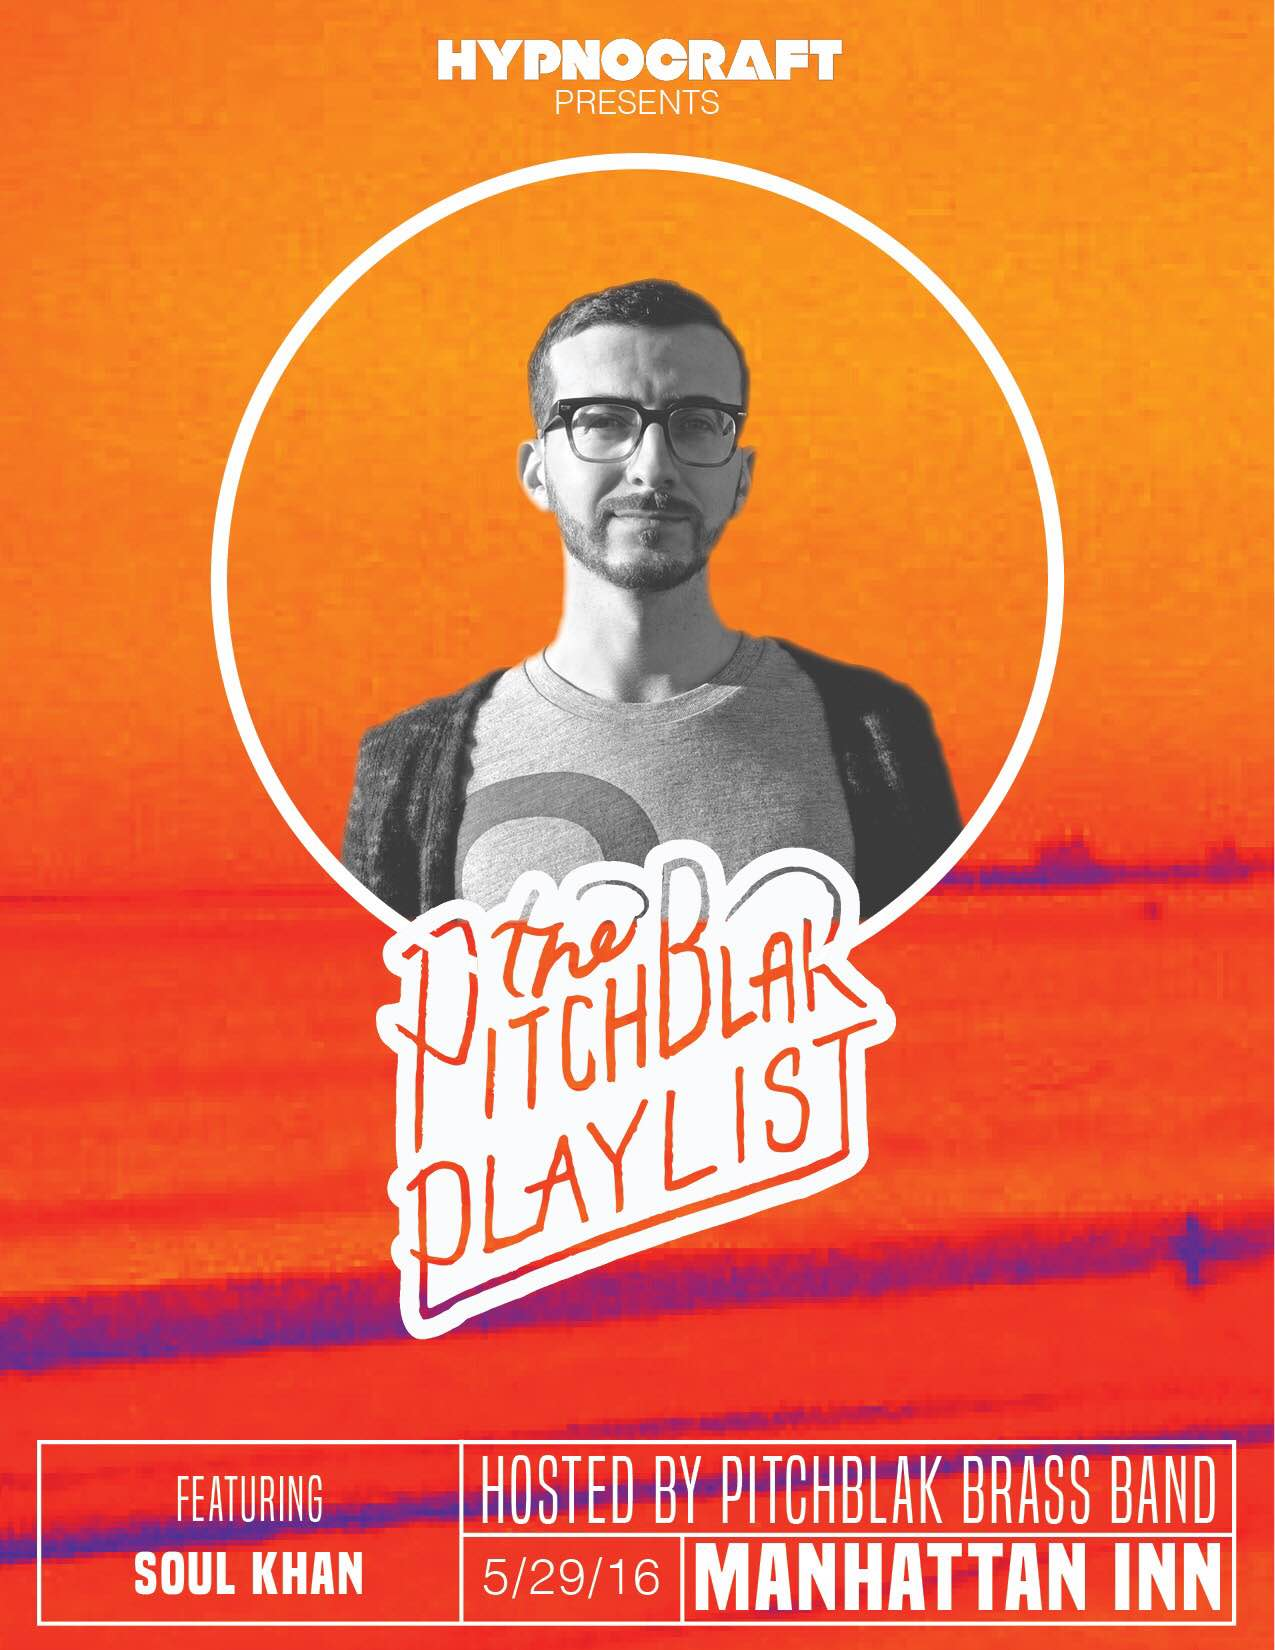 The @PitchBlakBrass Band's Monthly #PitchBlakPlaylist ft. @SoulKhan @ The Manhattan Inn | New York | United States